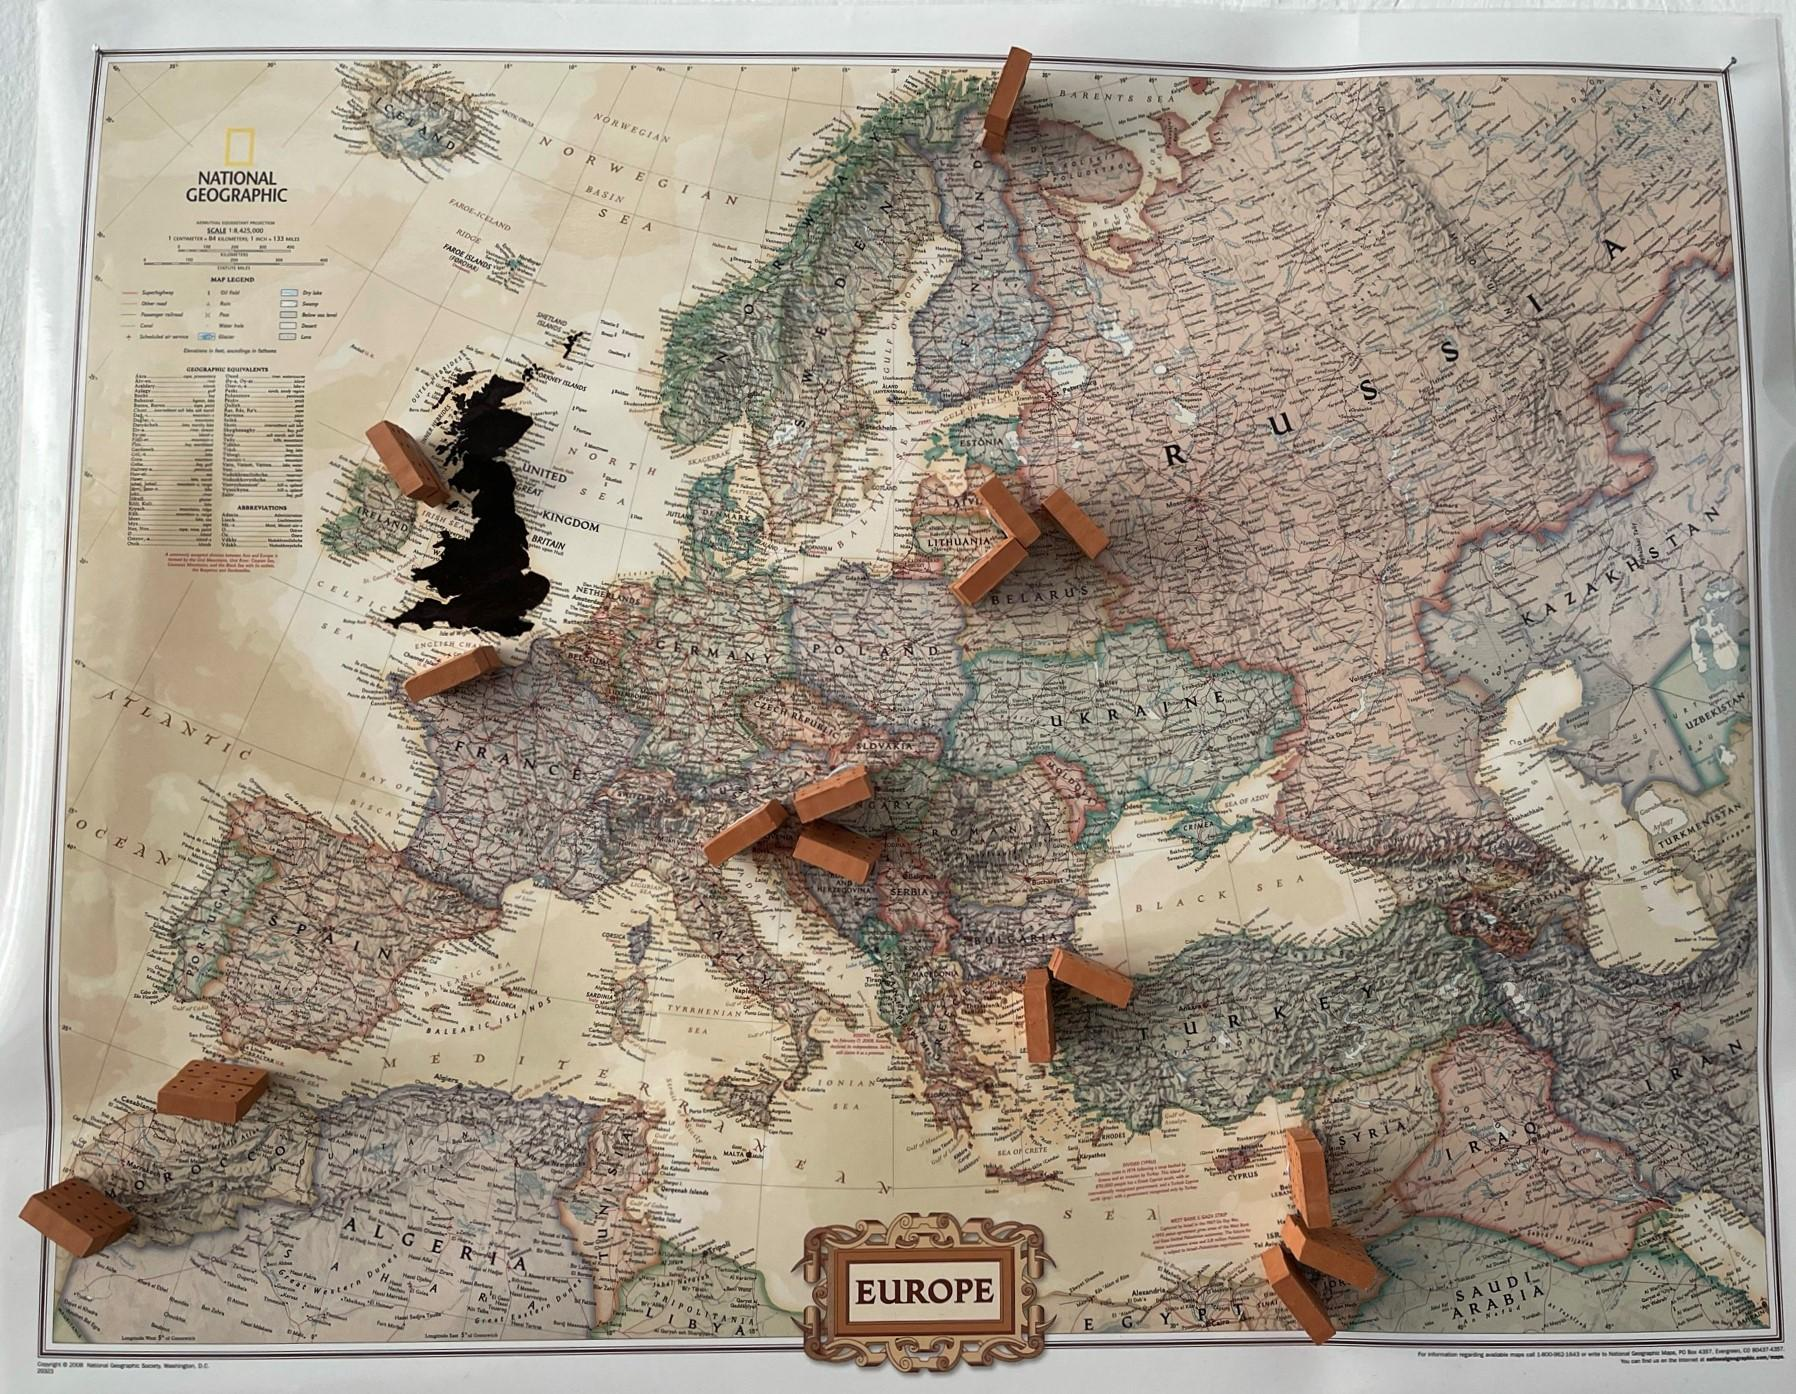 Around the Worlds in 80 Maps - Image 7